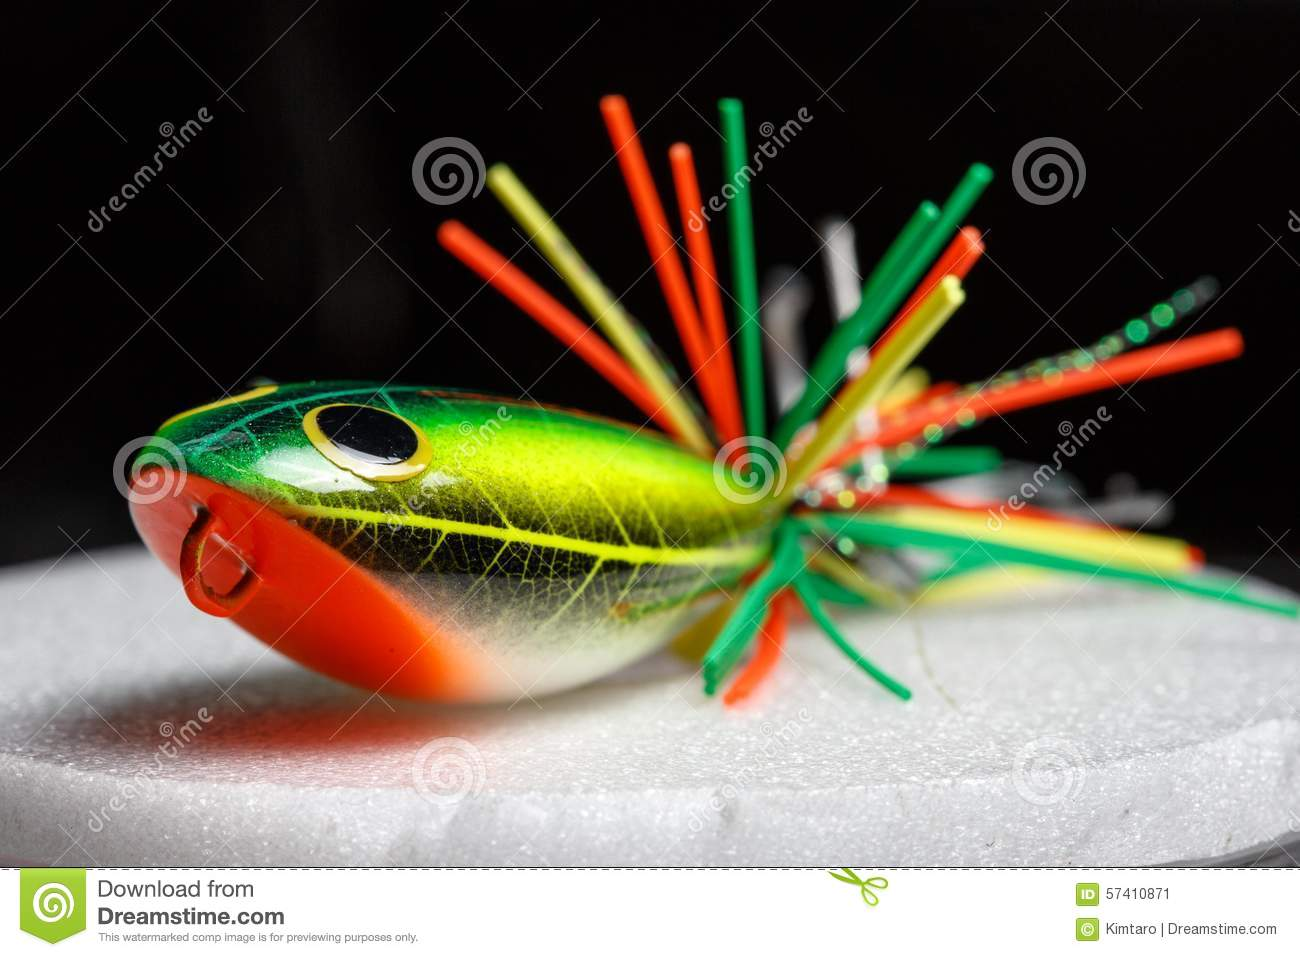 Action Lure For Sport Fishing Game Stock Image - Image of ...